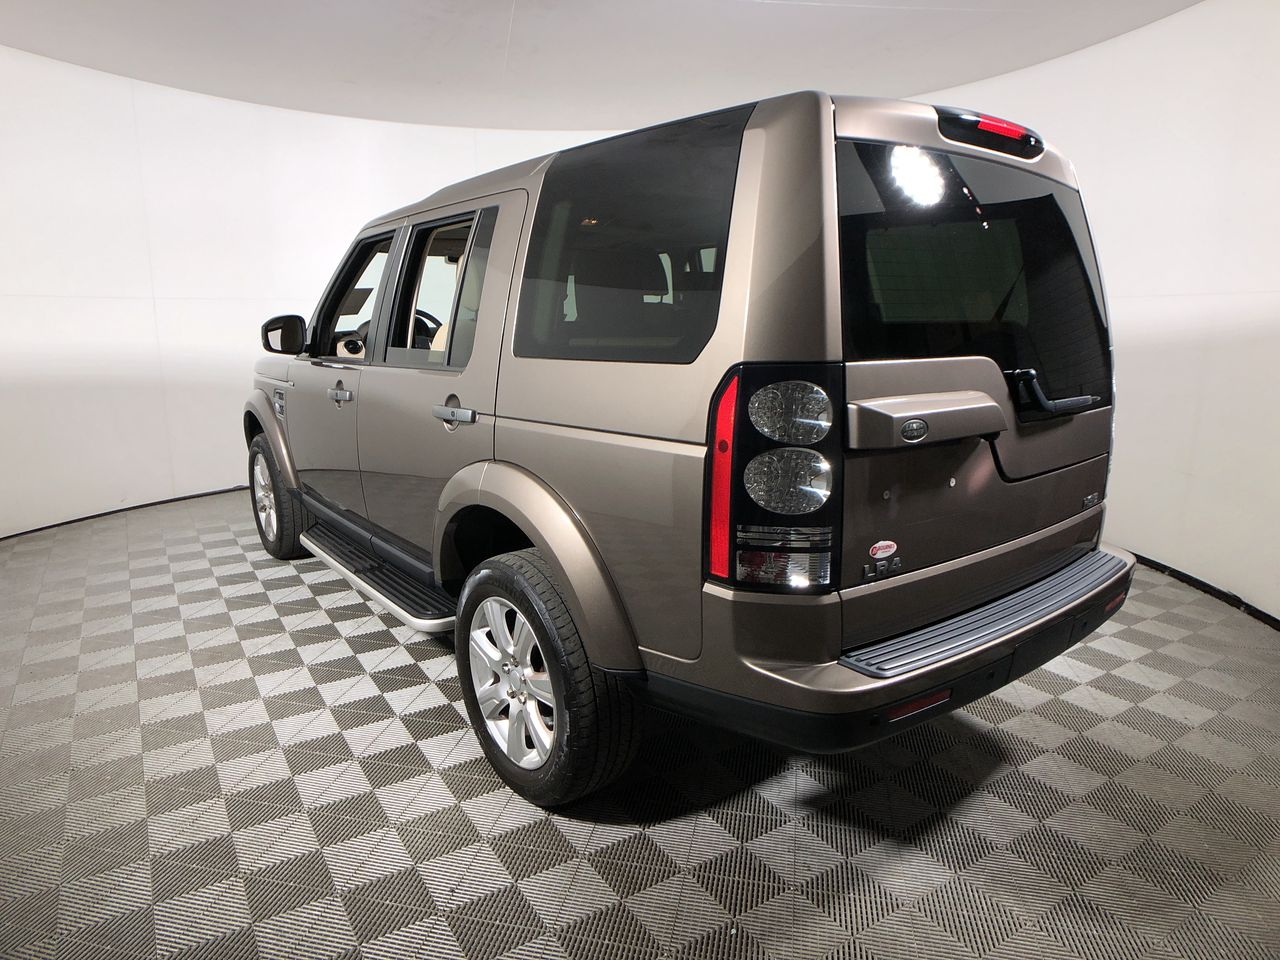 2015 Land Rover LR4 - Fair Car Ownership